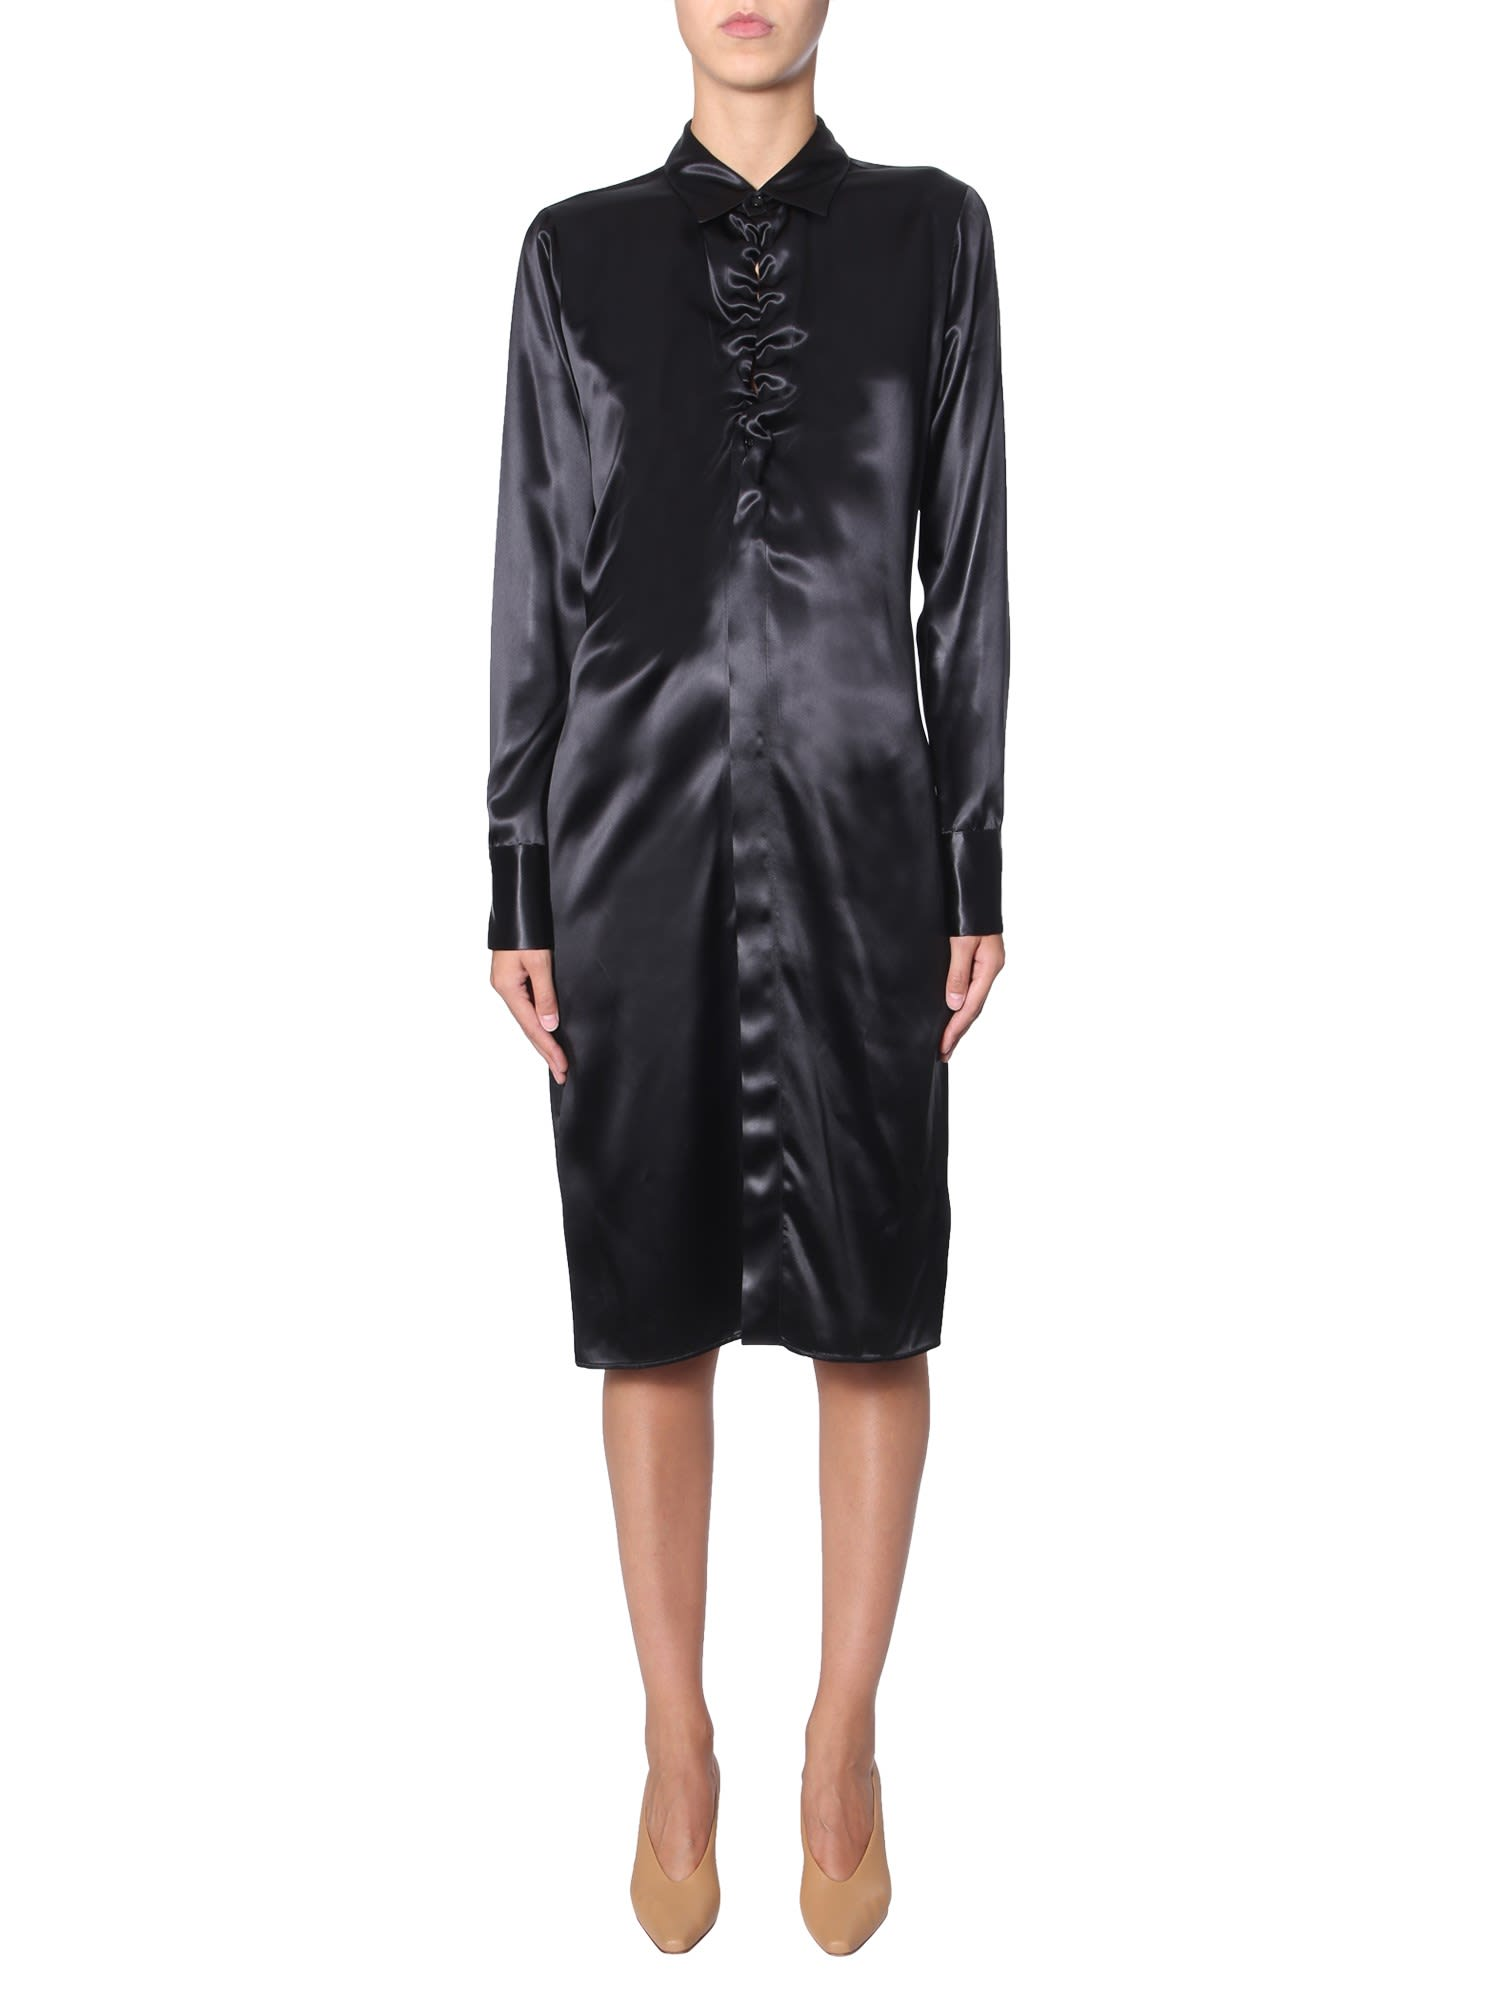 Bottega Veneta Long Sleeve Dress